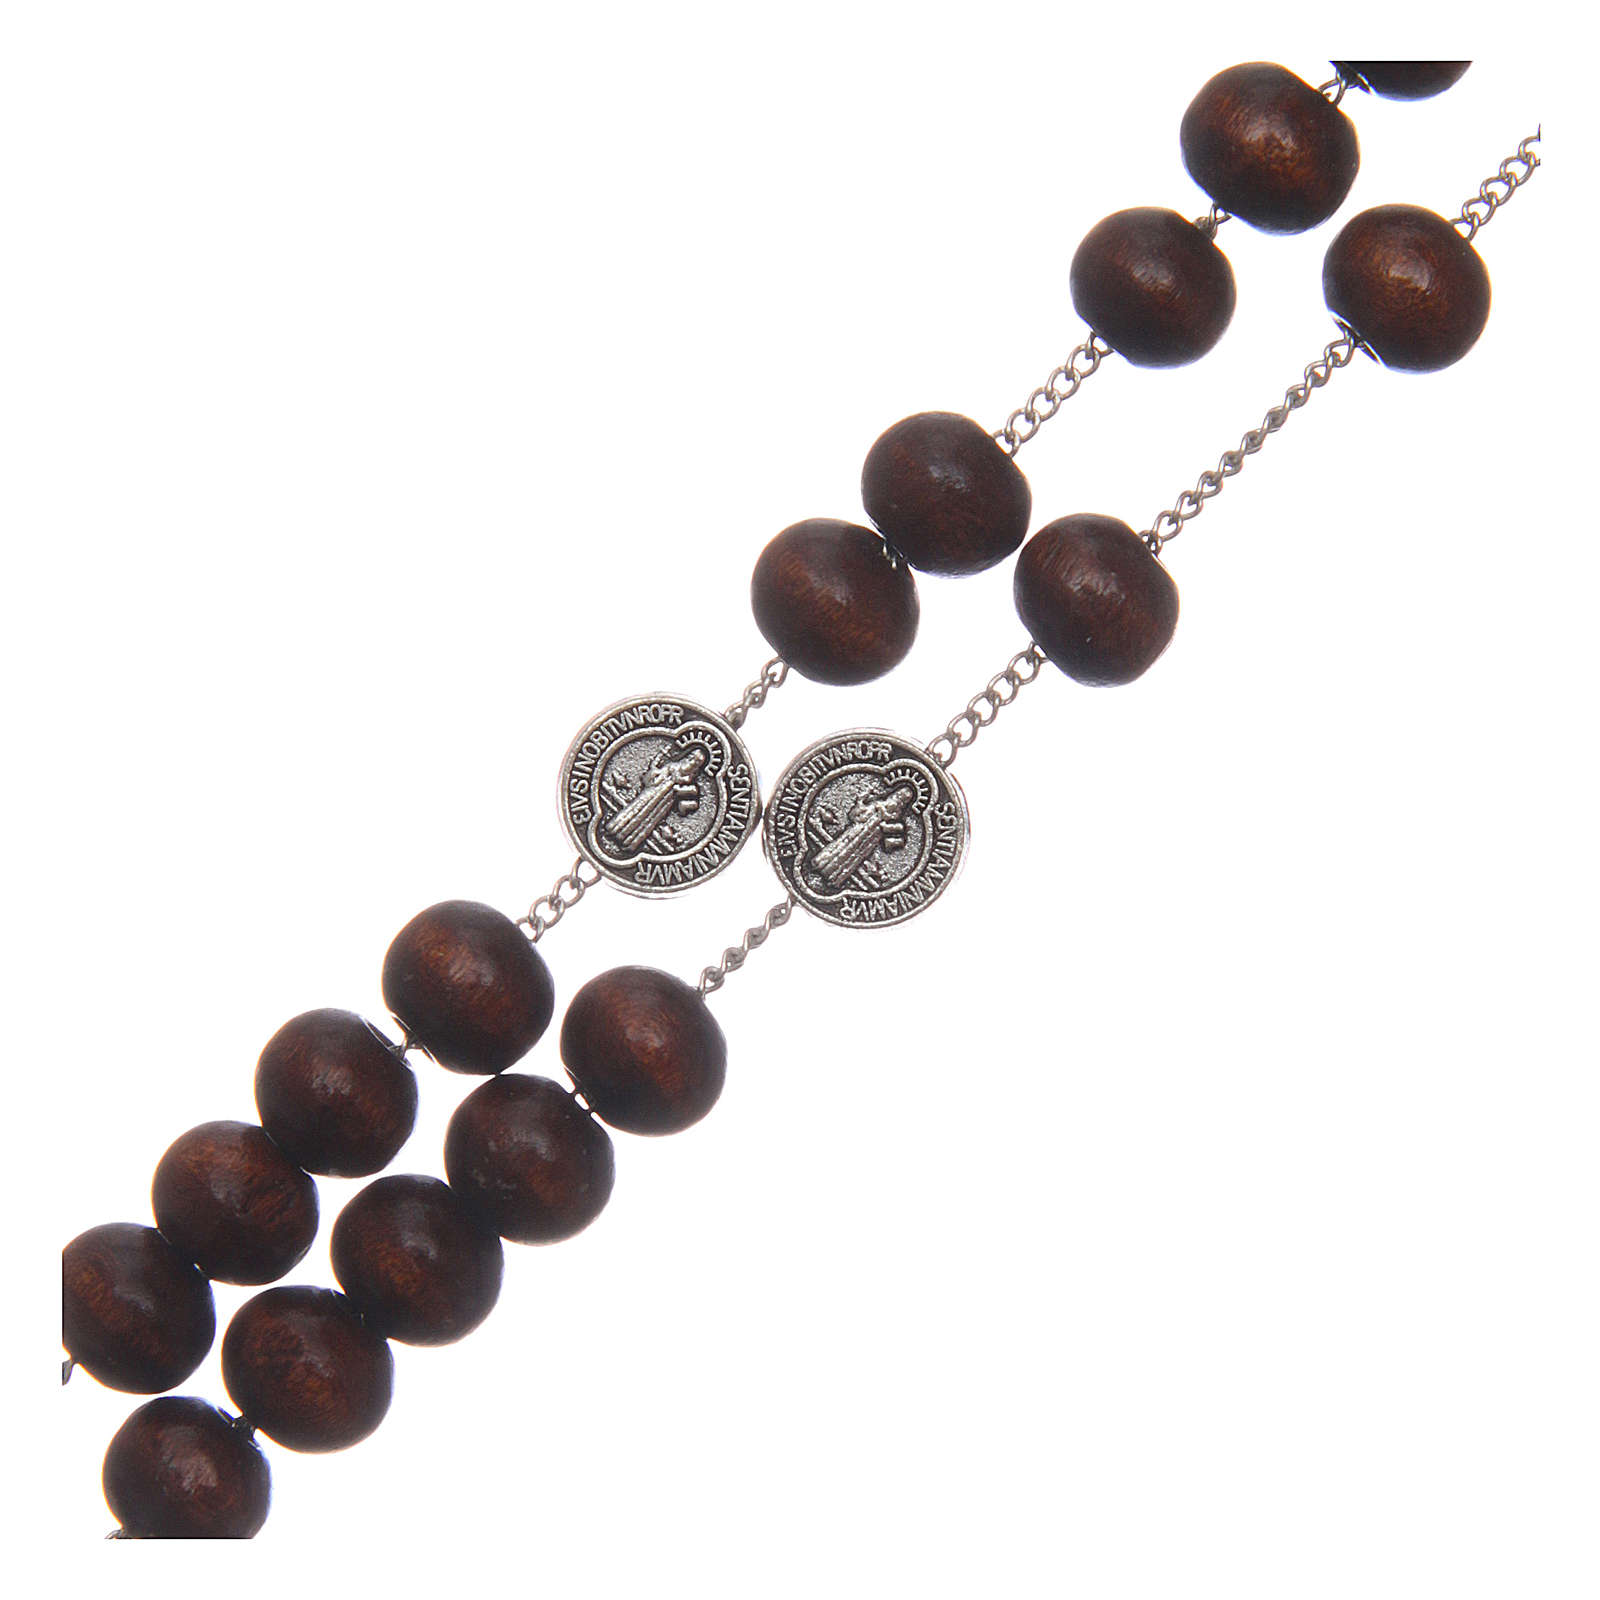 Chapelet collier Saint Benoît bois marron grains 7 mm 4